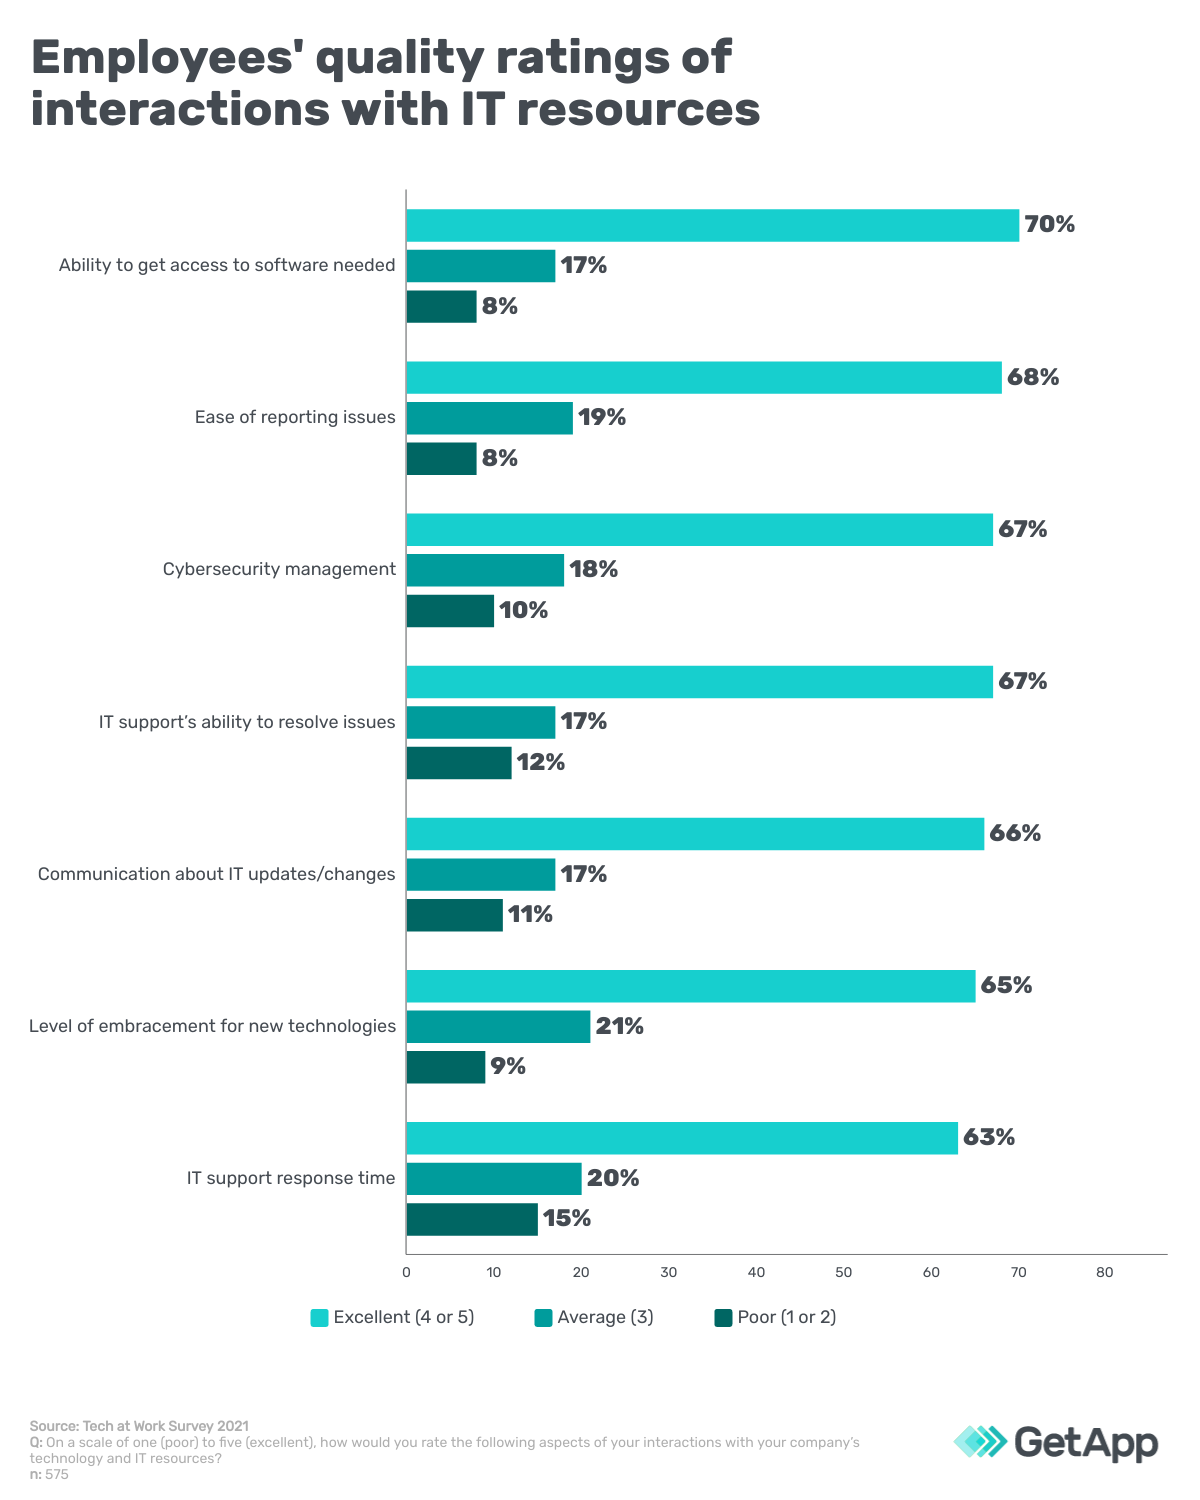 Employees' quality ratings of interactions with IT resources